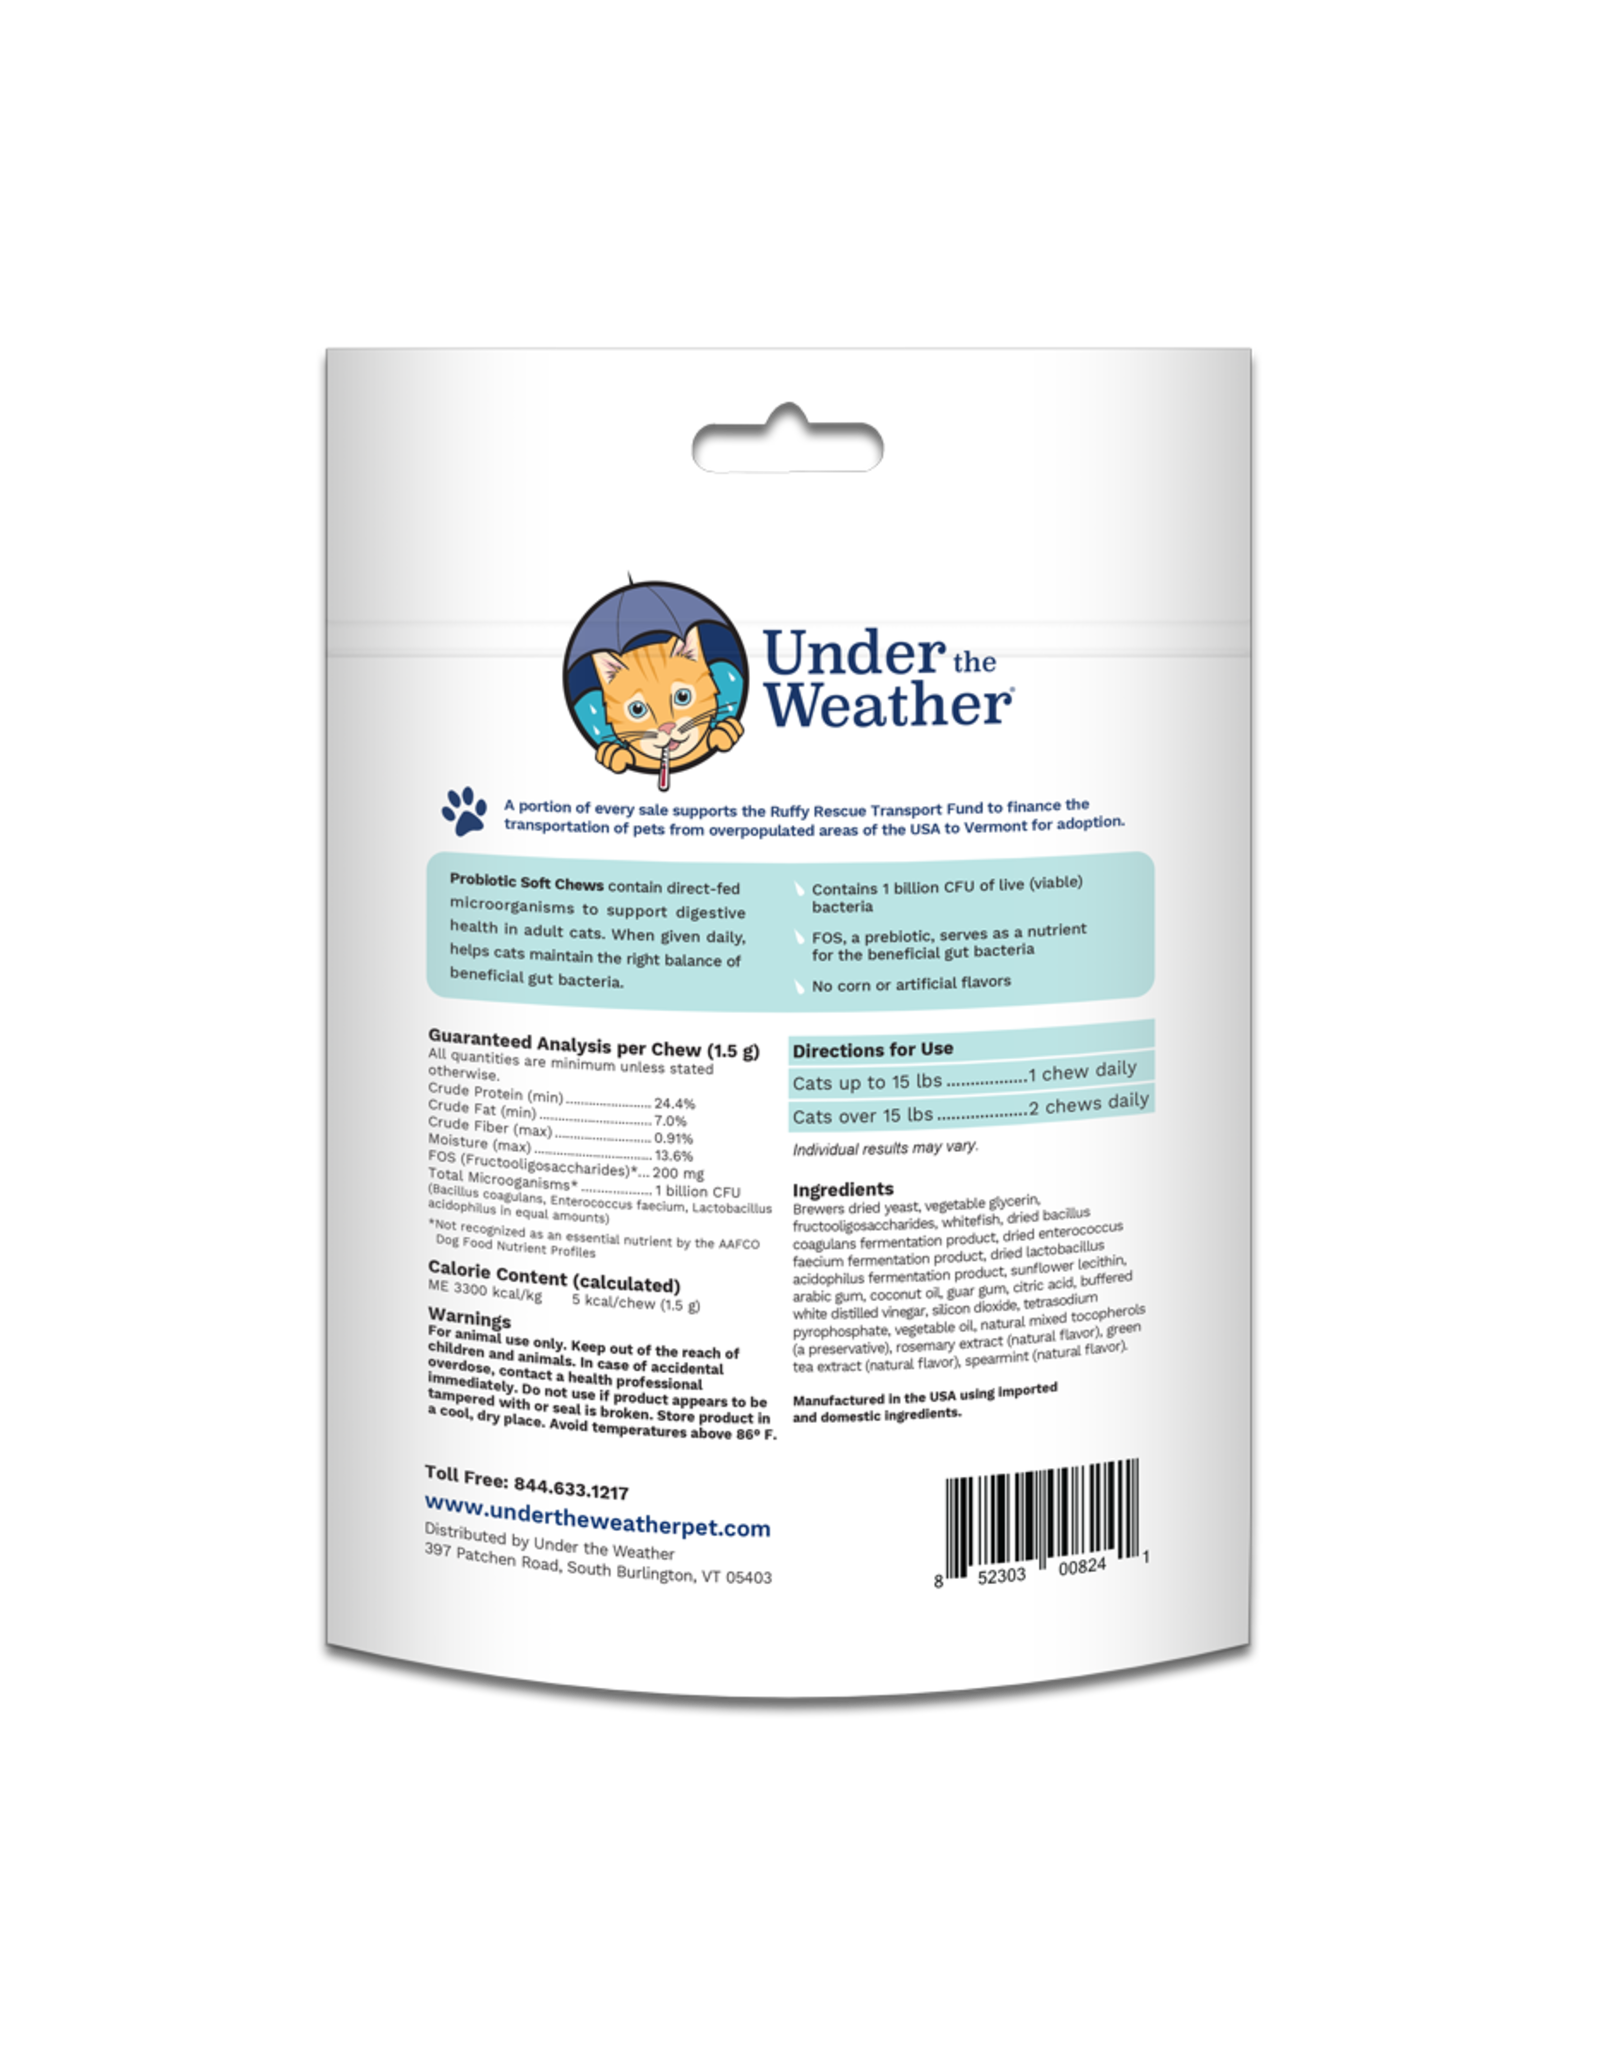 Under the Weather Probiotic Soft Chews For Cats